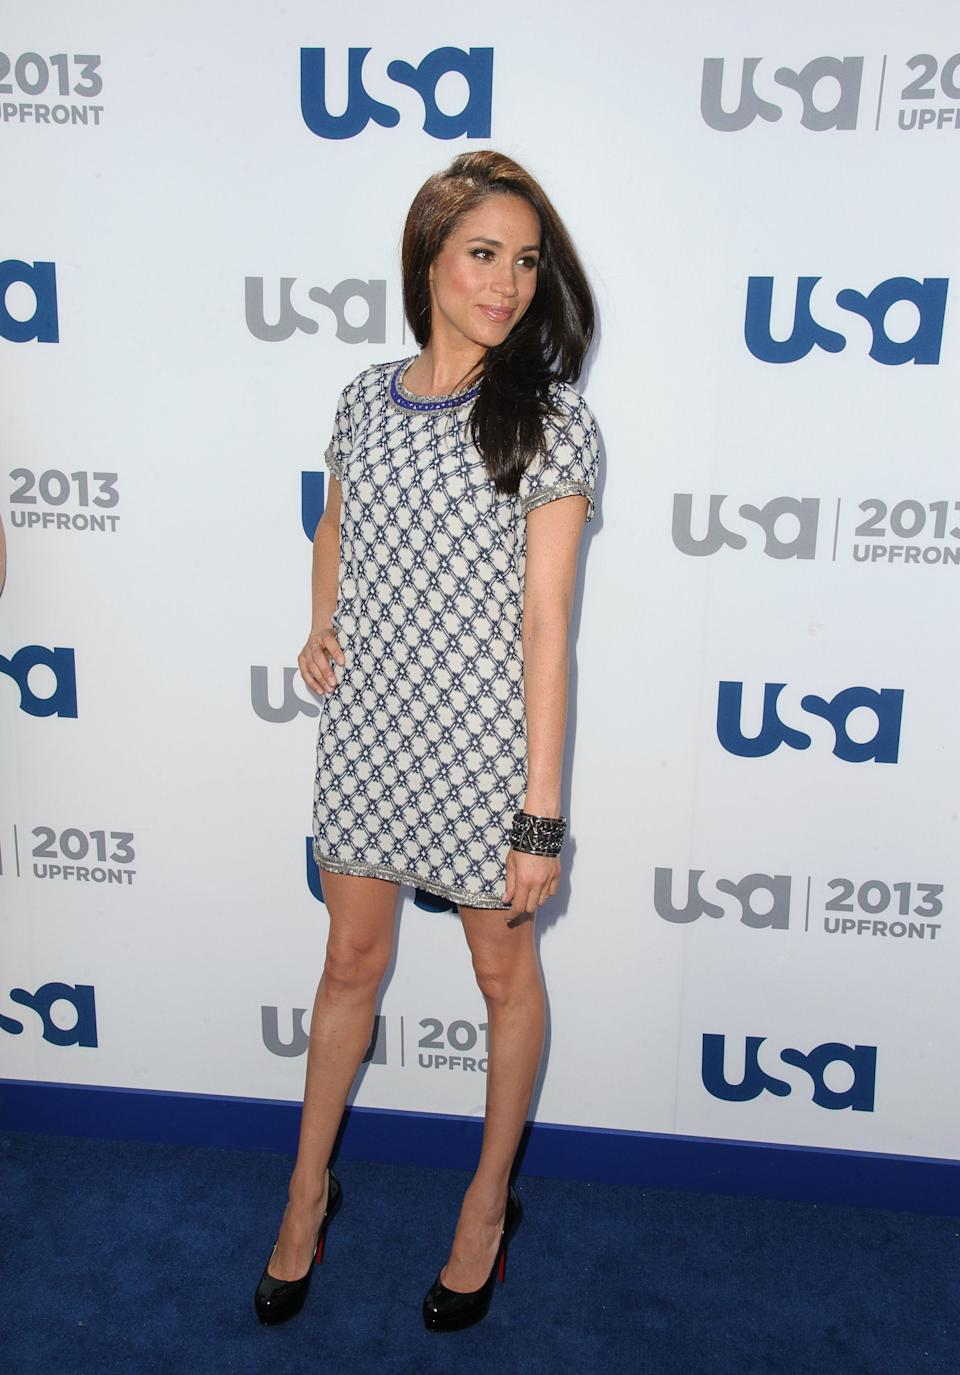 AtUSA Network's 2013 Upfront Event at Pier 36 in New York.